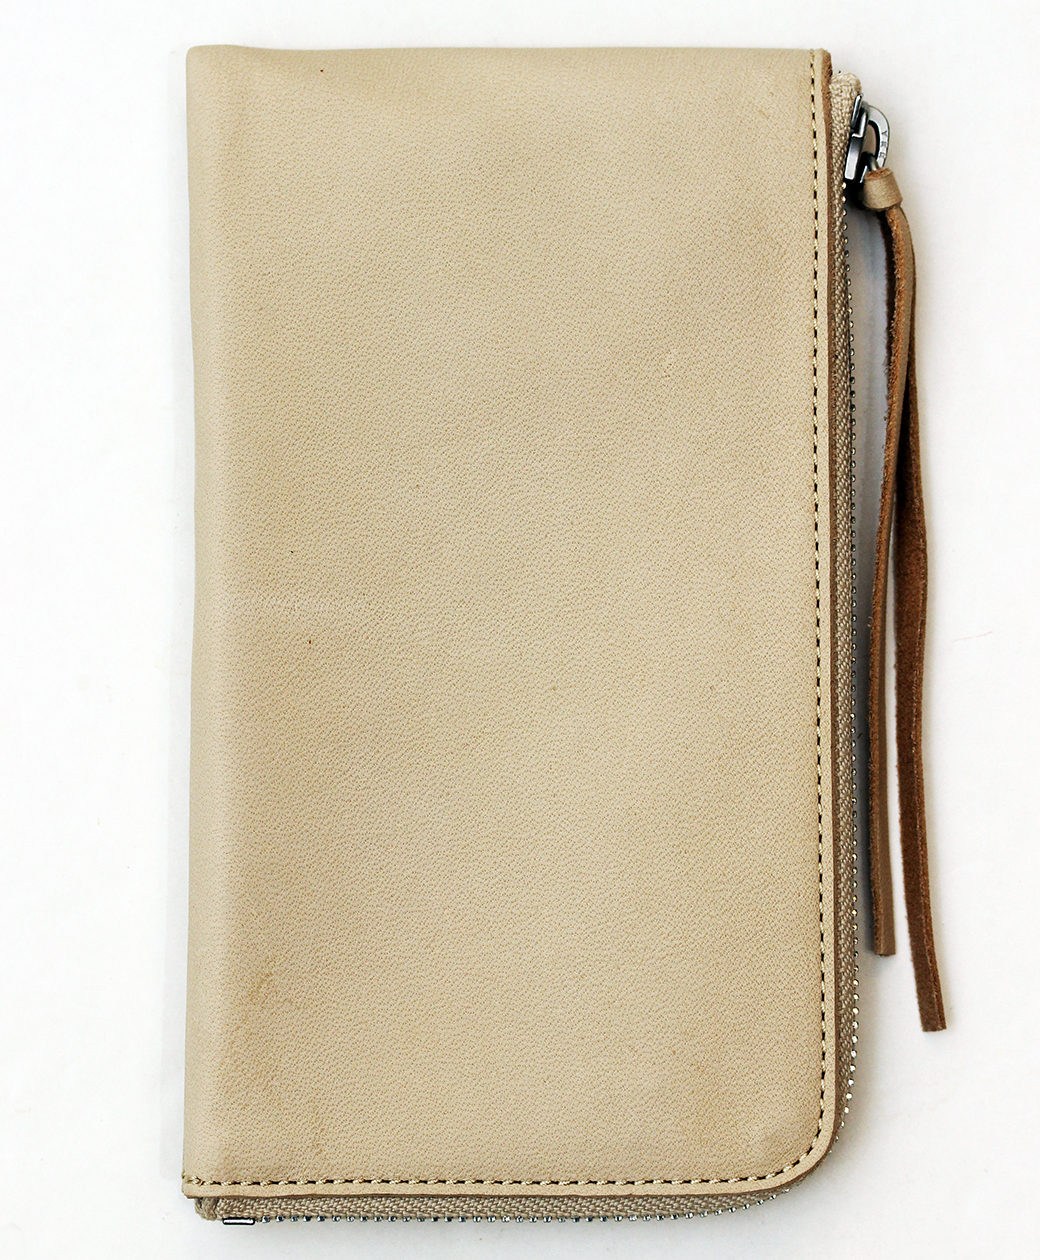 hobo HORSE LEATHER LONG ZIP WALLET(BEIGE)